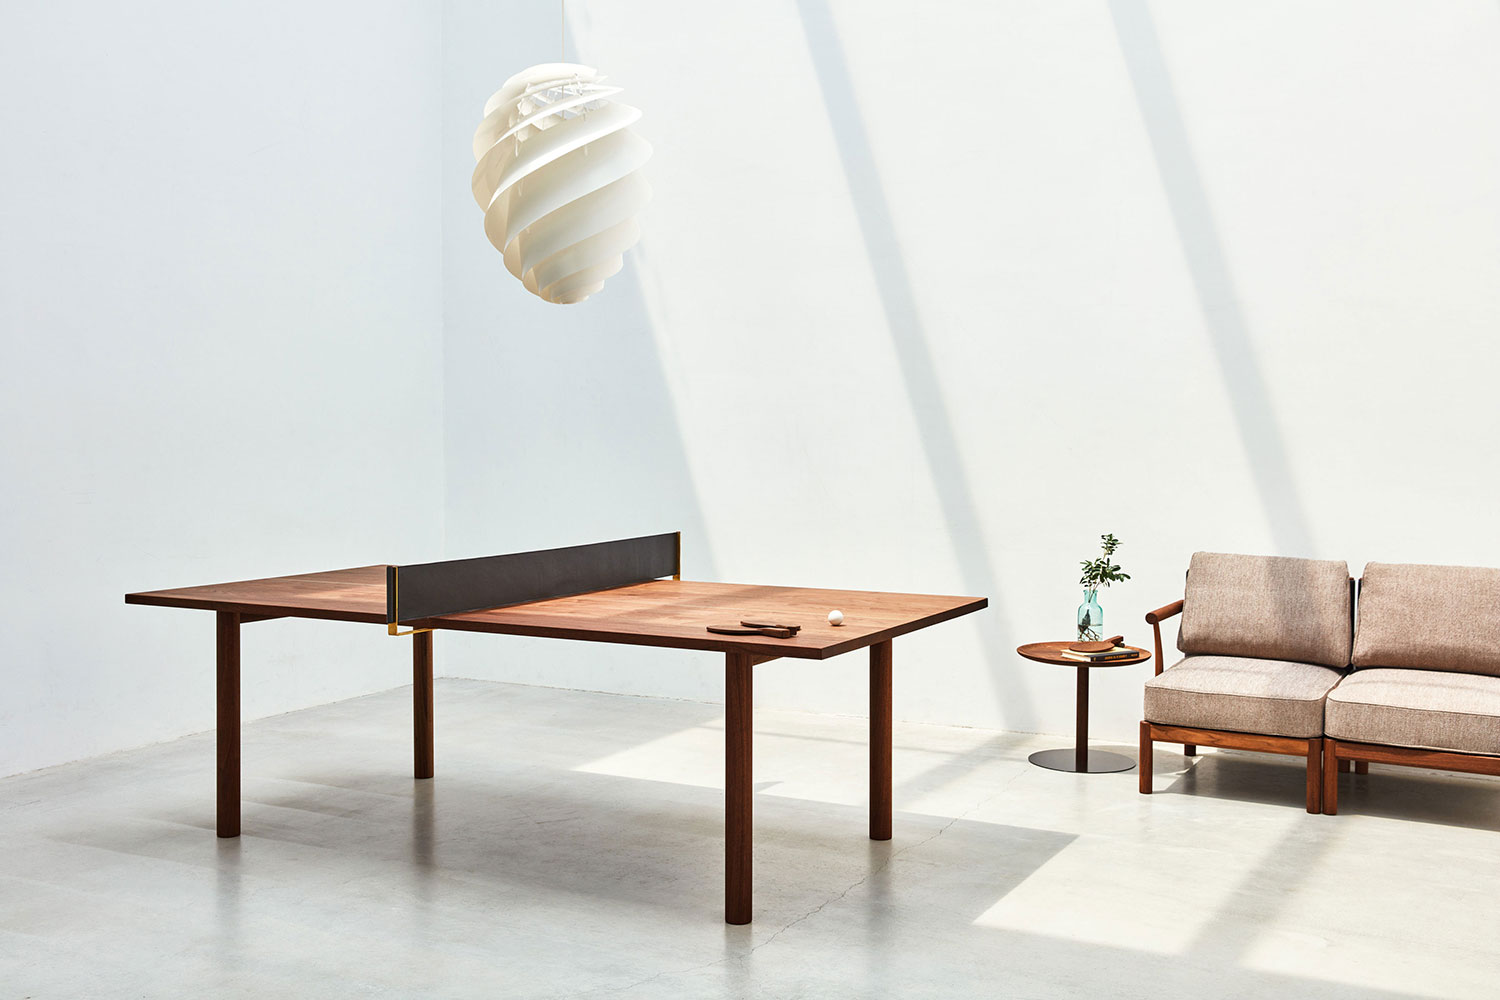 Yu an elegant and minimal wooden furniture collection by for Minimal furniture